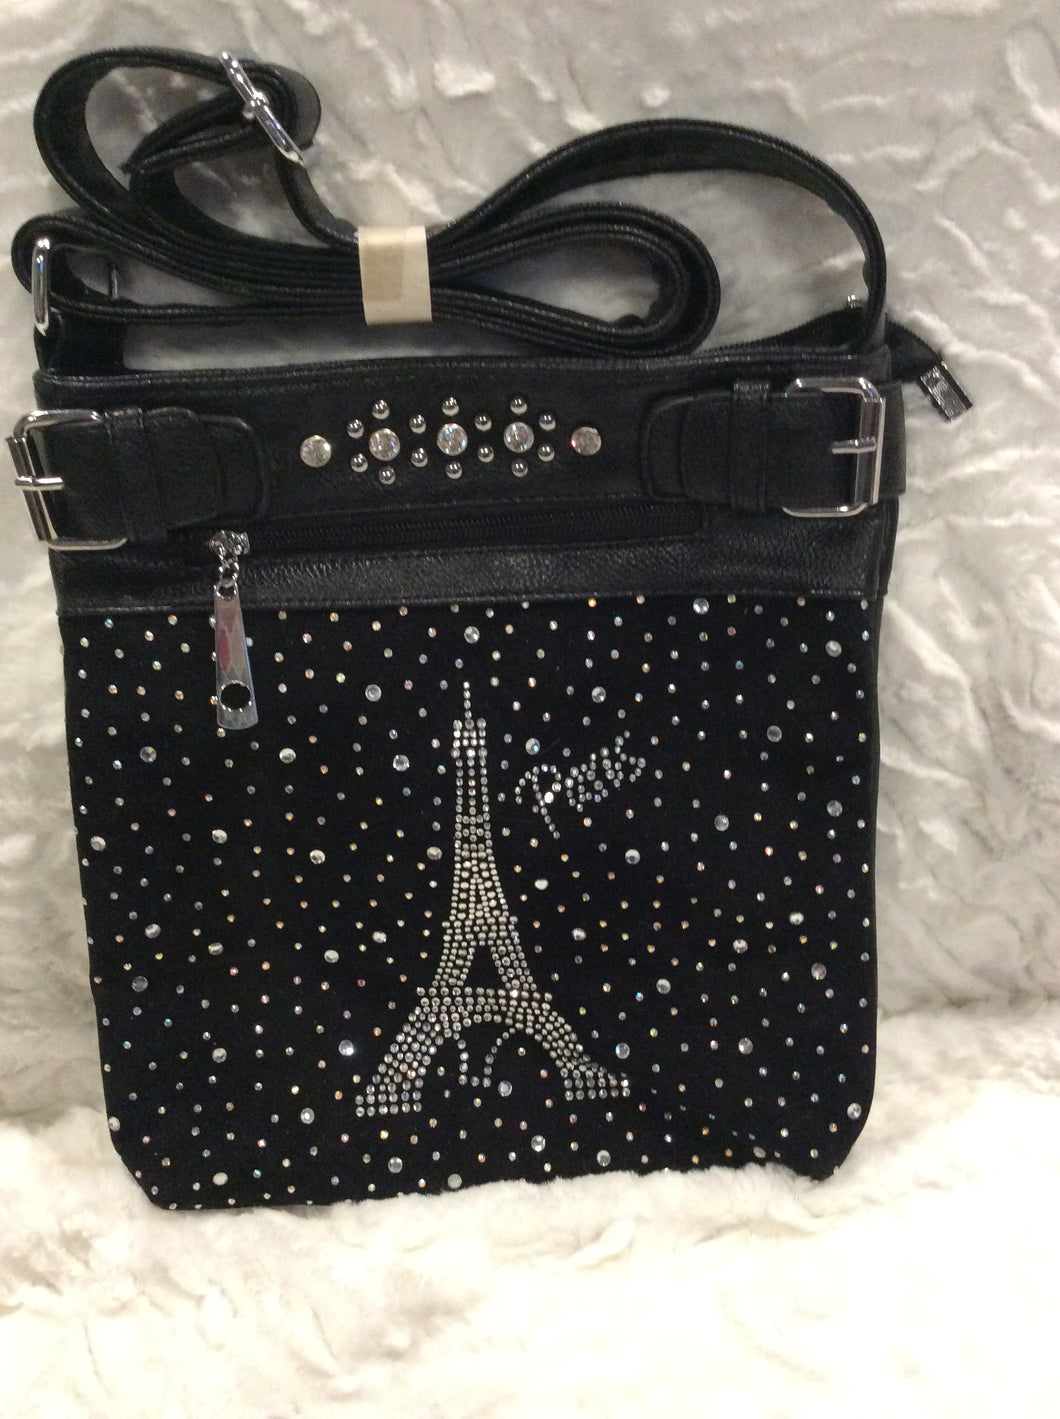 Paris Bling Crossbody Handbag